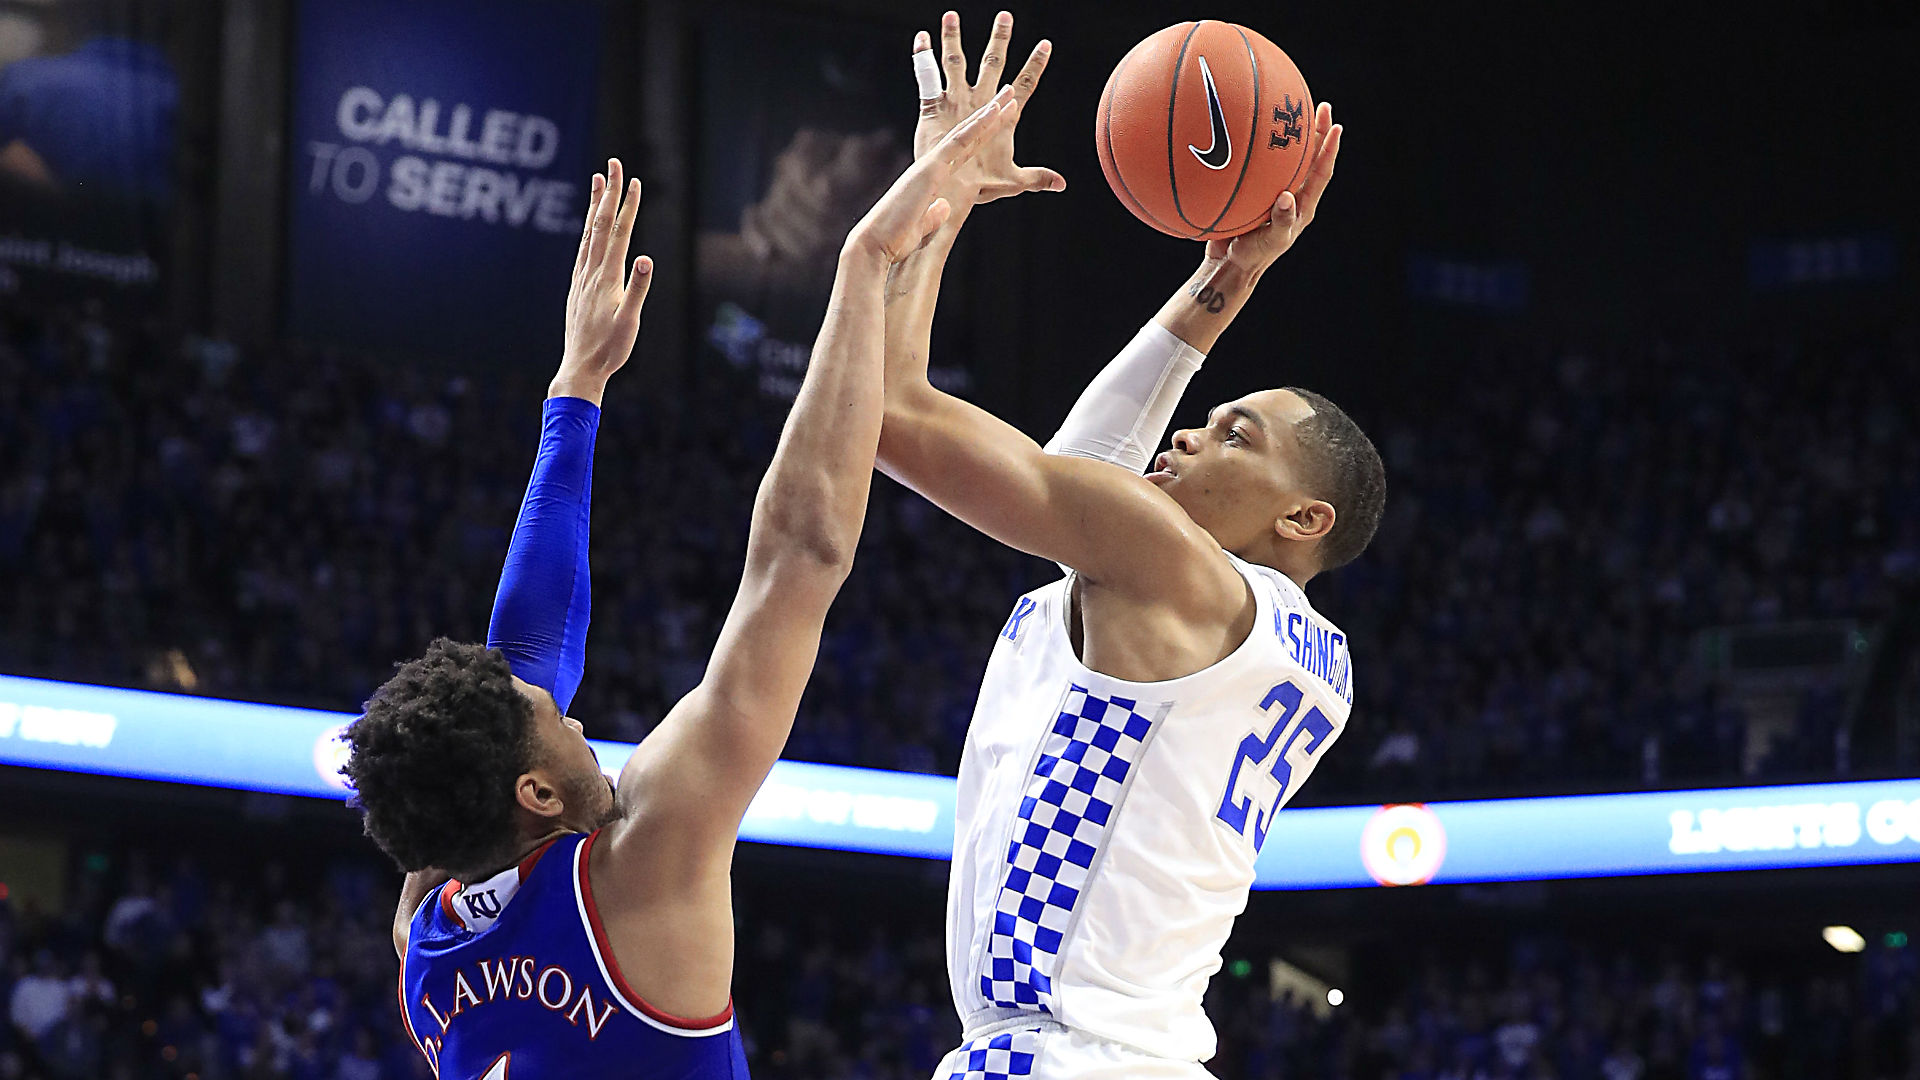 Washington helps Kentucky top Kansas